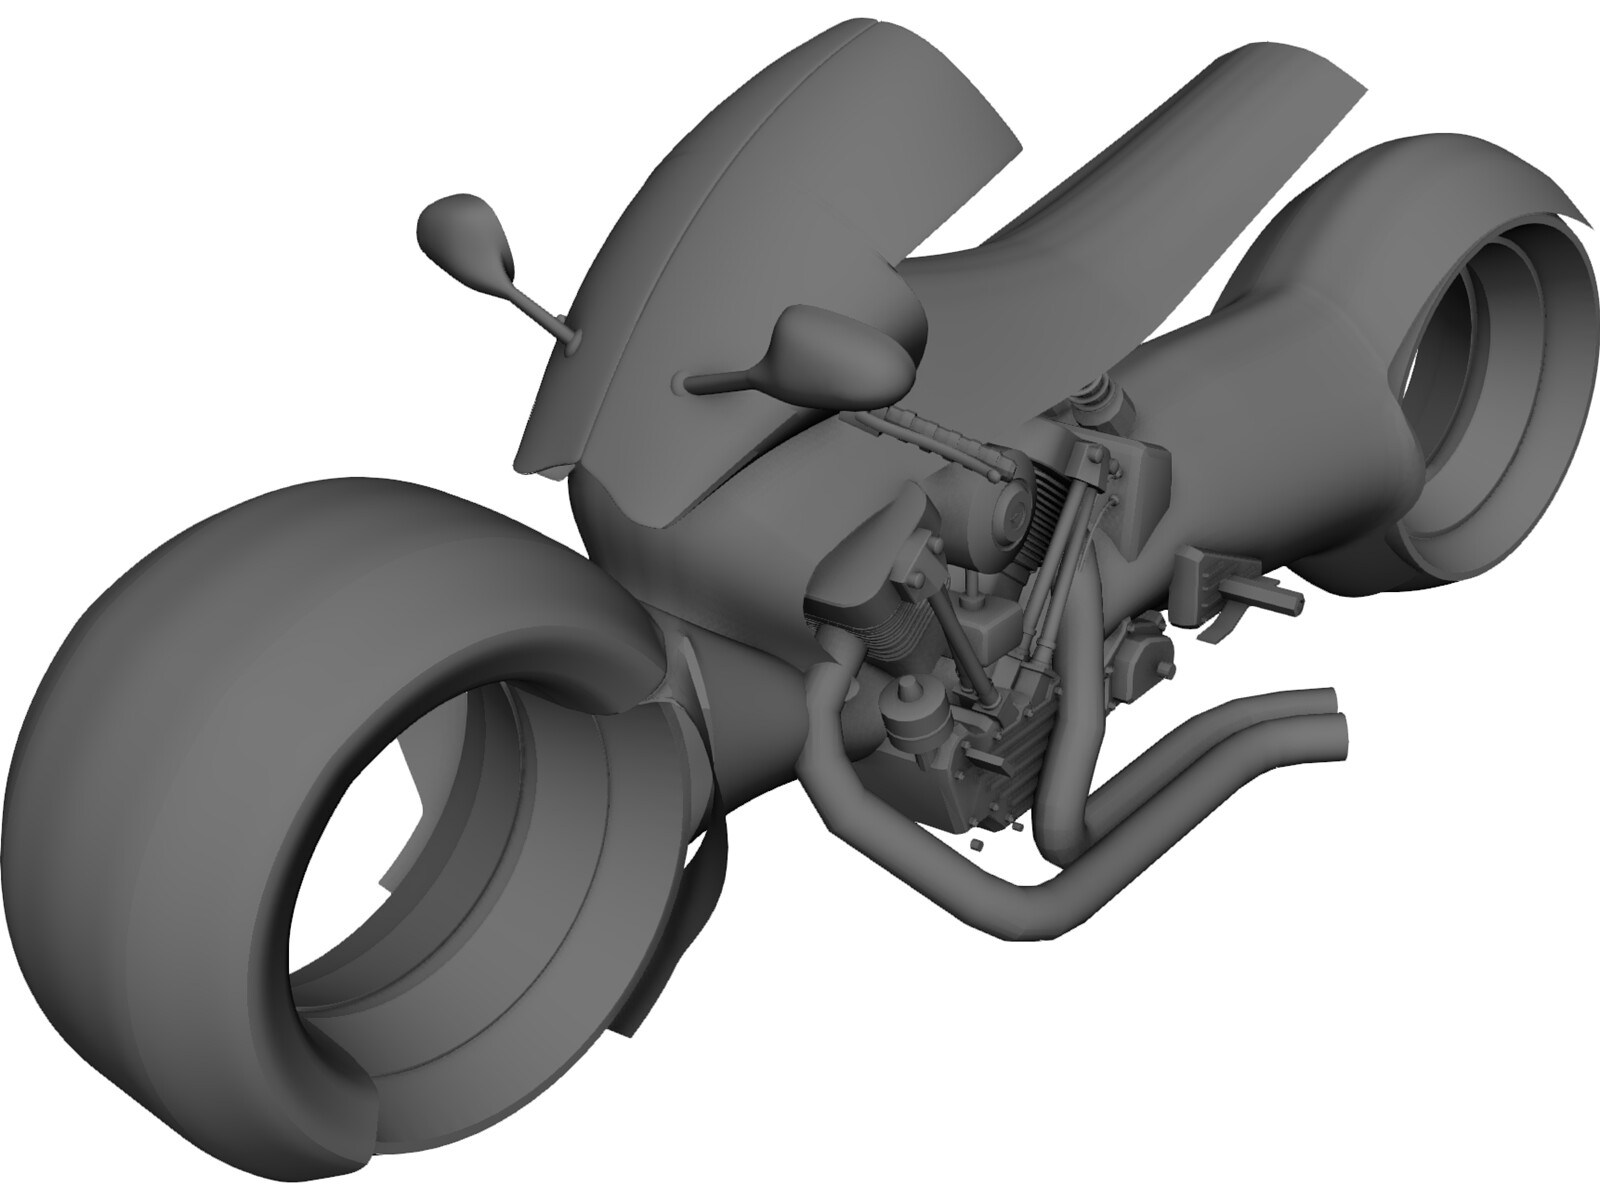 Connecting Rod Bike Concept